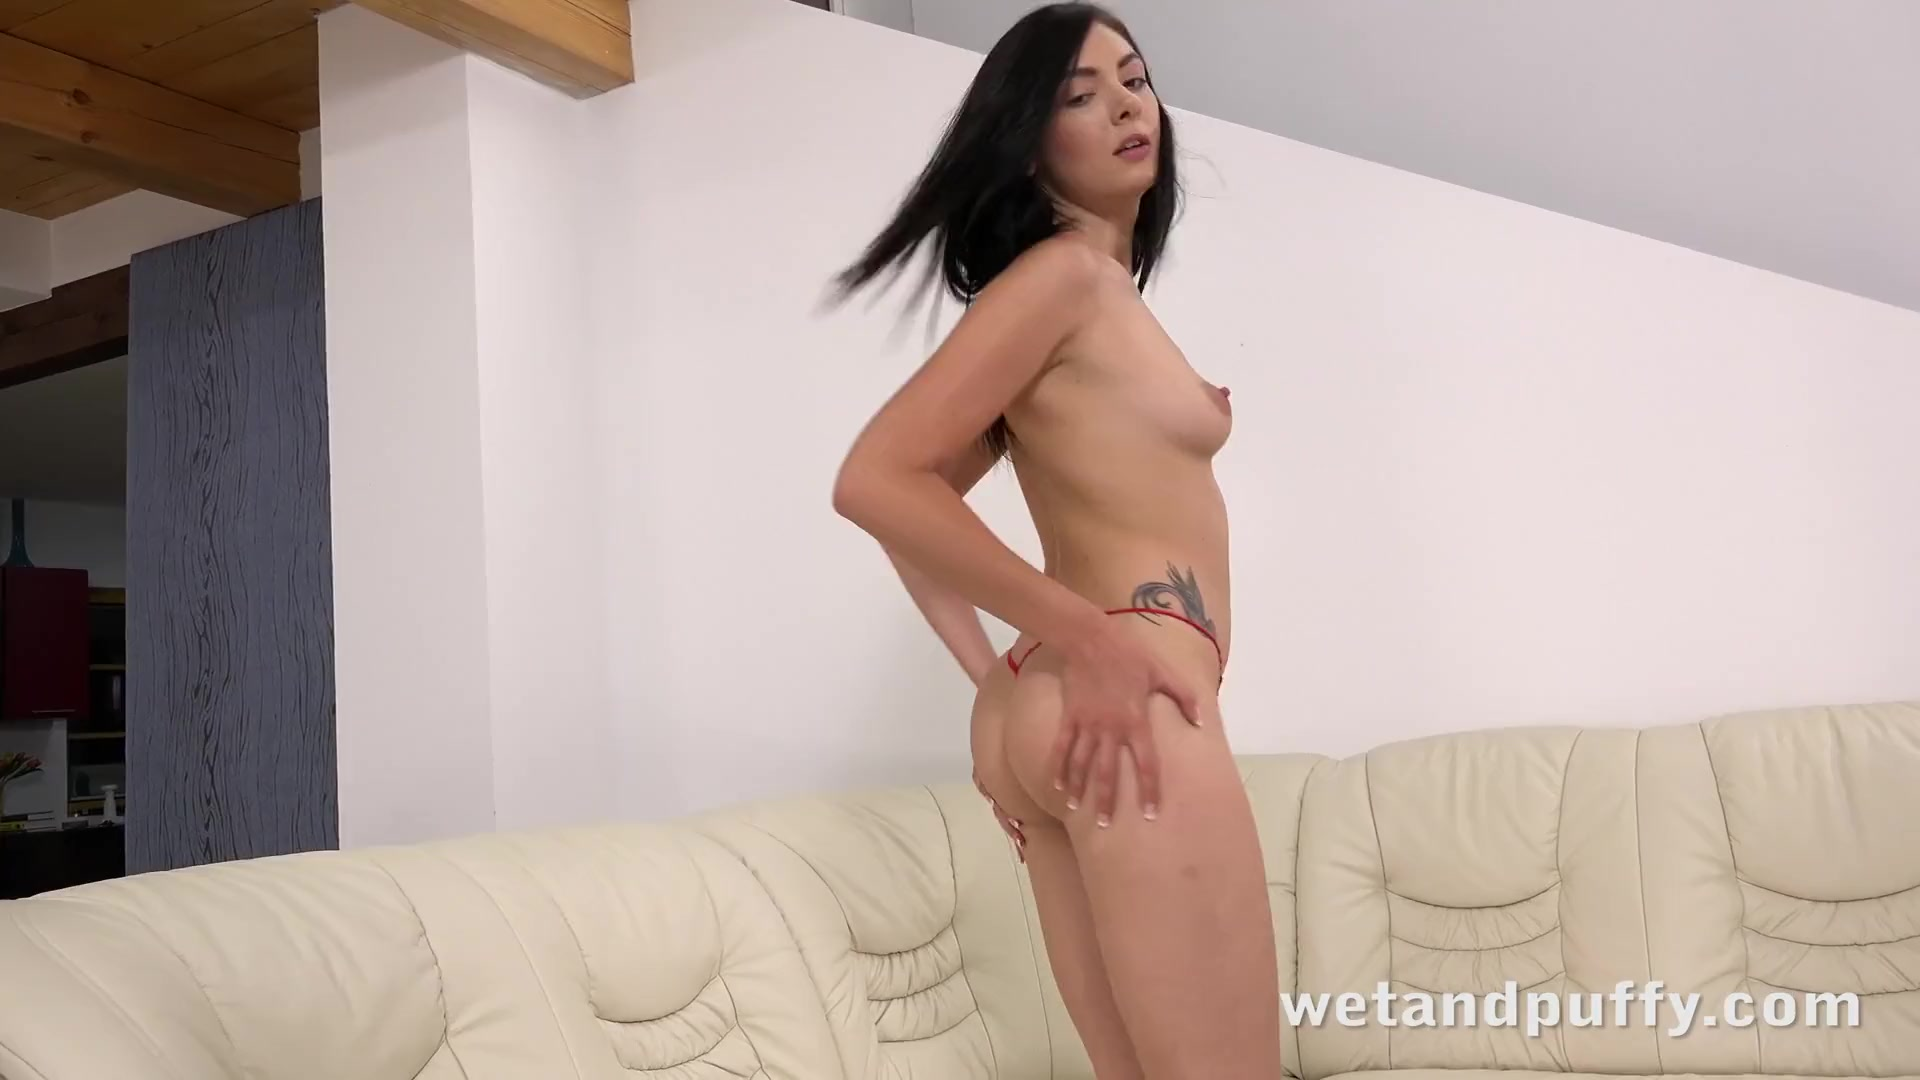 Preview 2 of Wetandpuffy - Marley Brinx Orgasms While Playing With Sex Toys